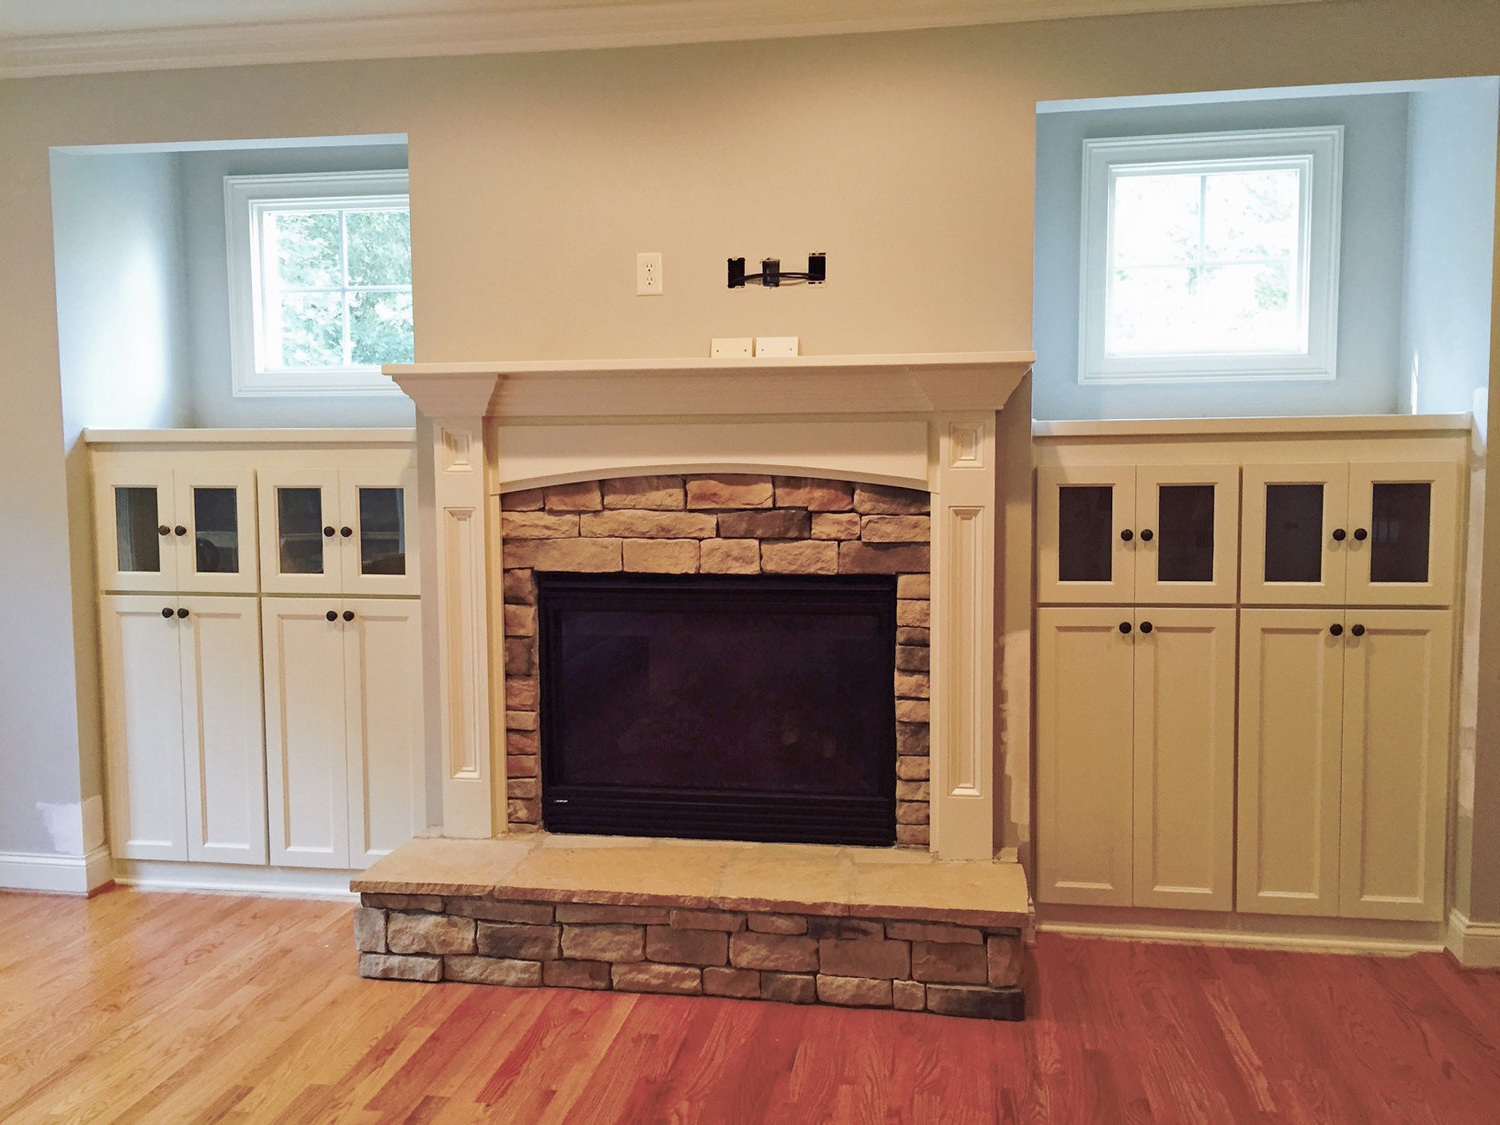 Fireplace Built-ins with Shaker Doors, Glass Doors, and Countertops